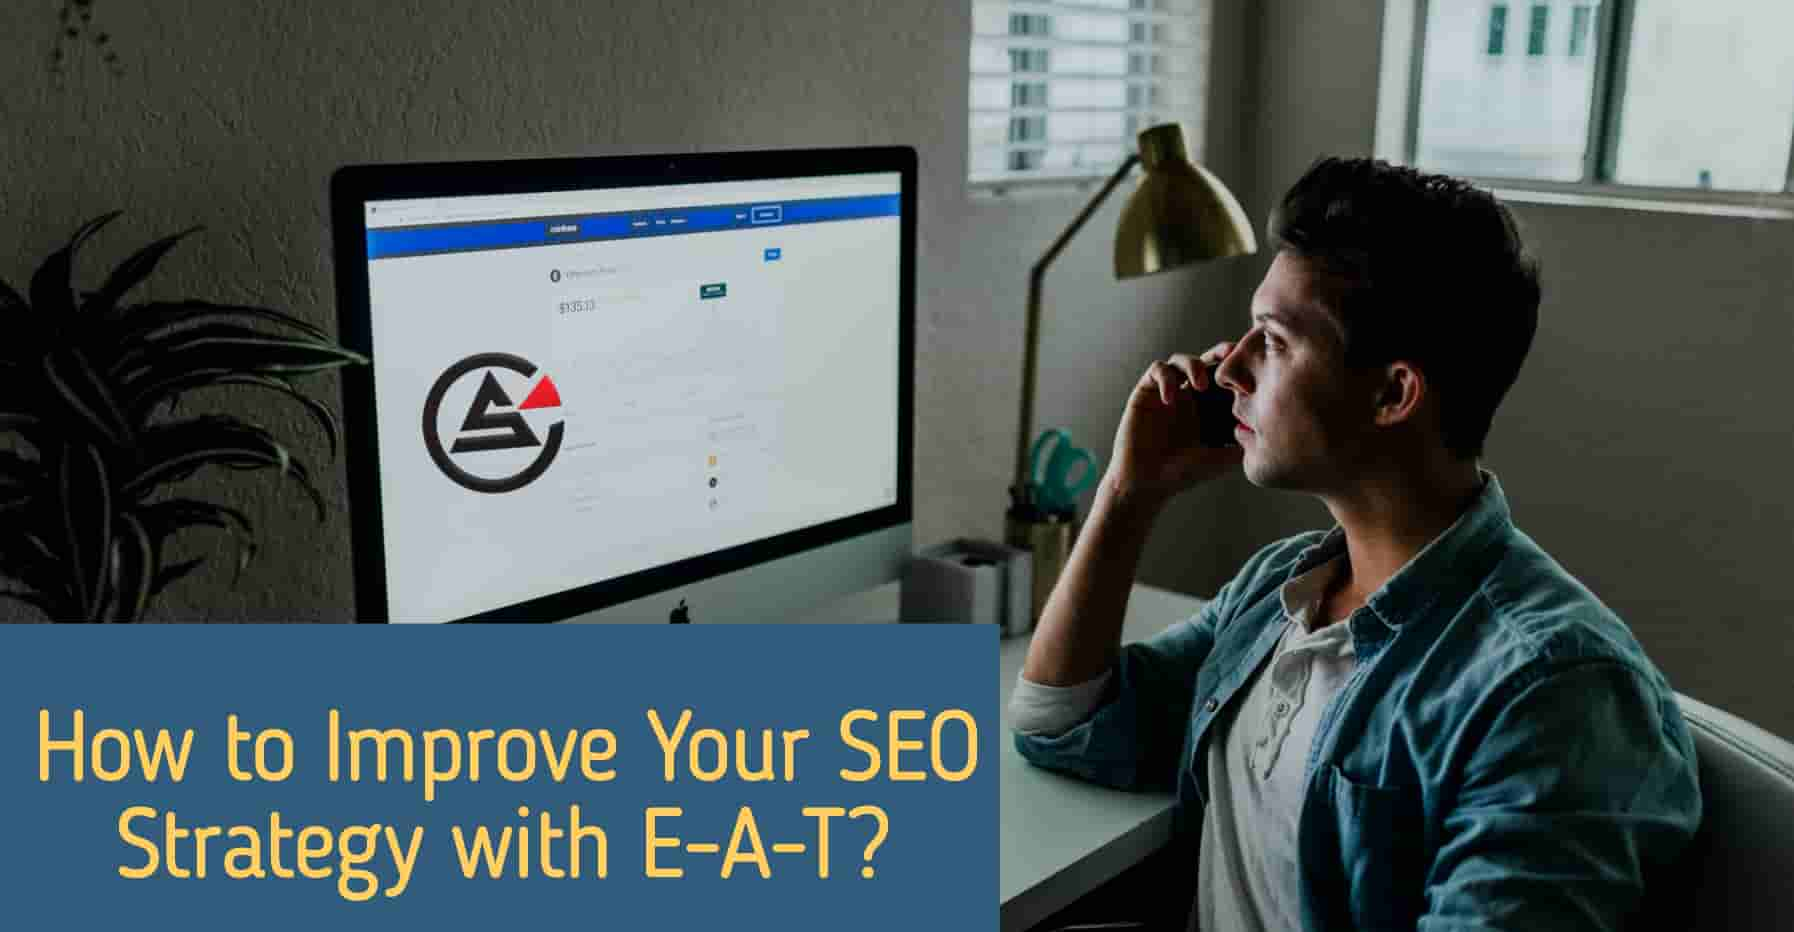 How To Improve Your SEO Strategy With E-A-T?